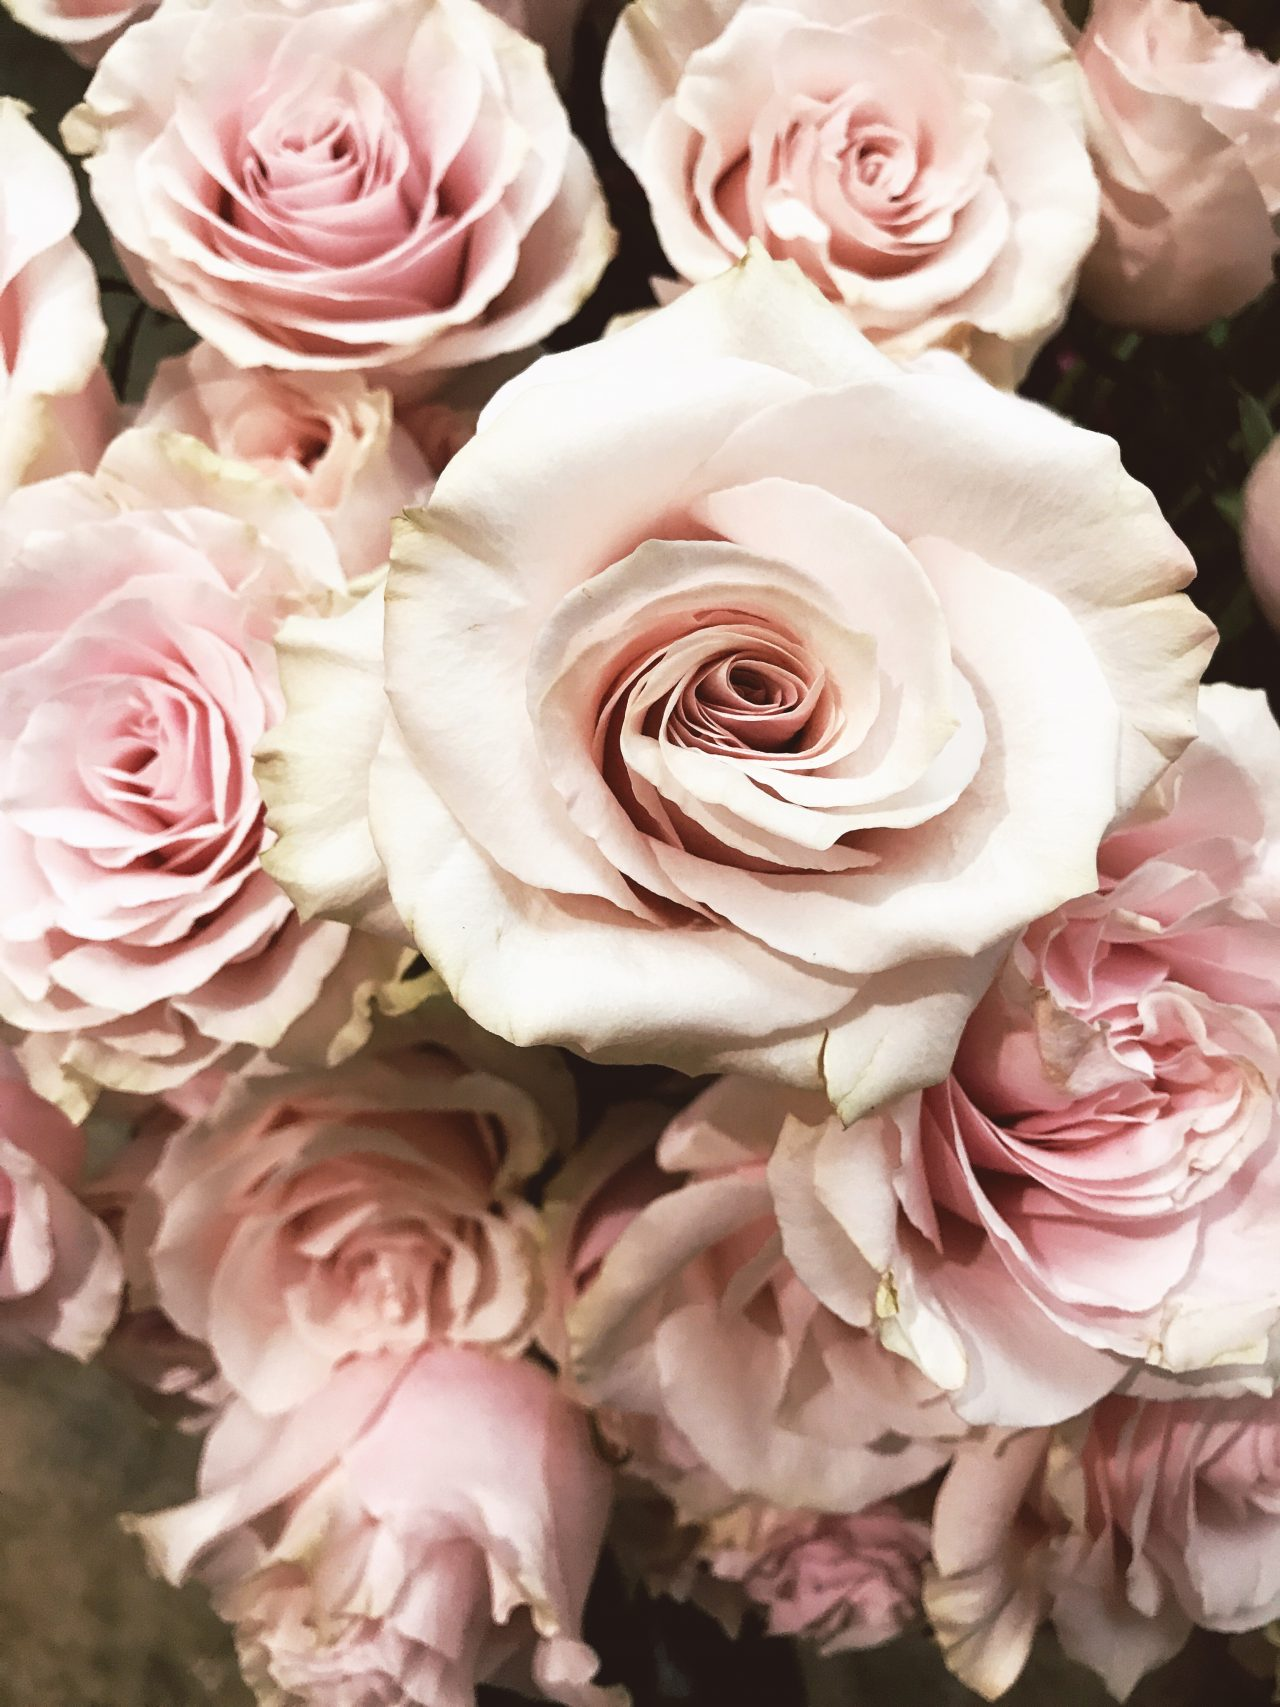 Friday's Five, Pink Mondial Roses